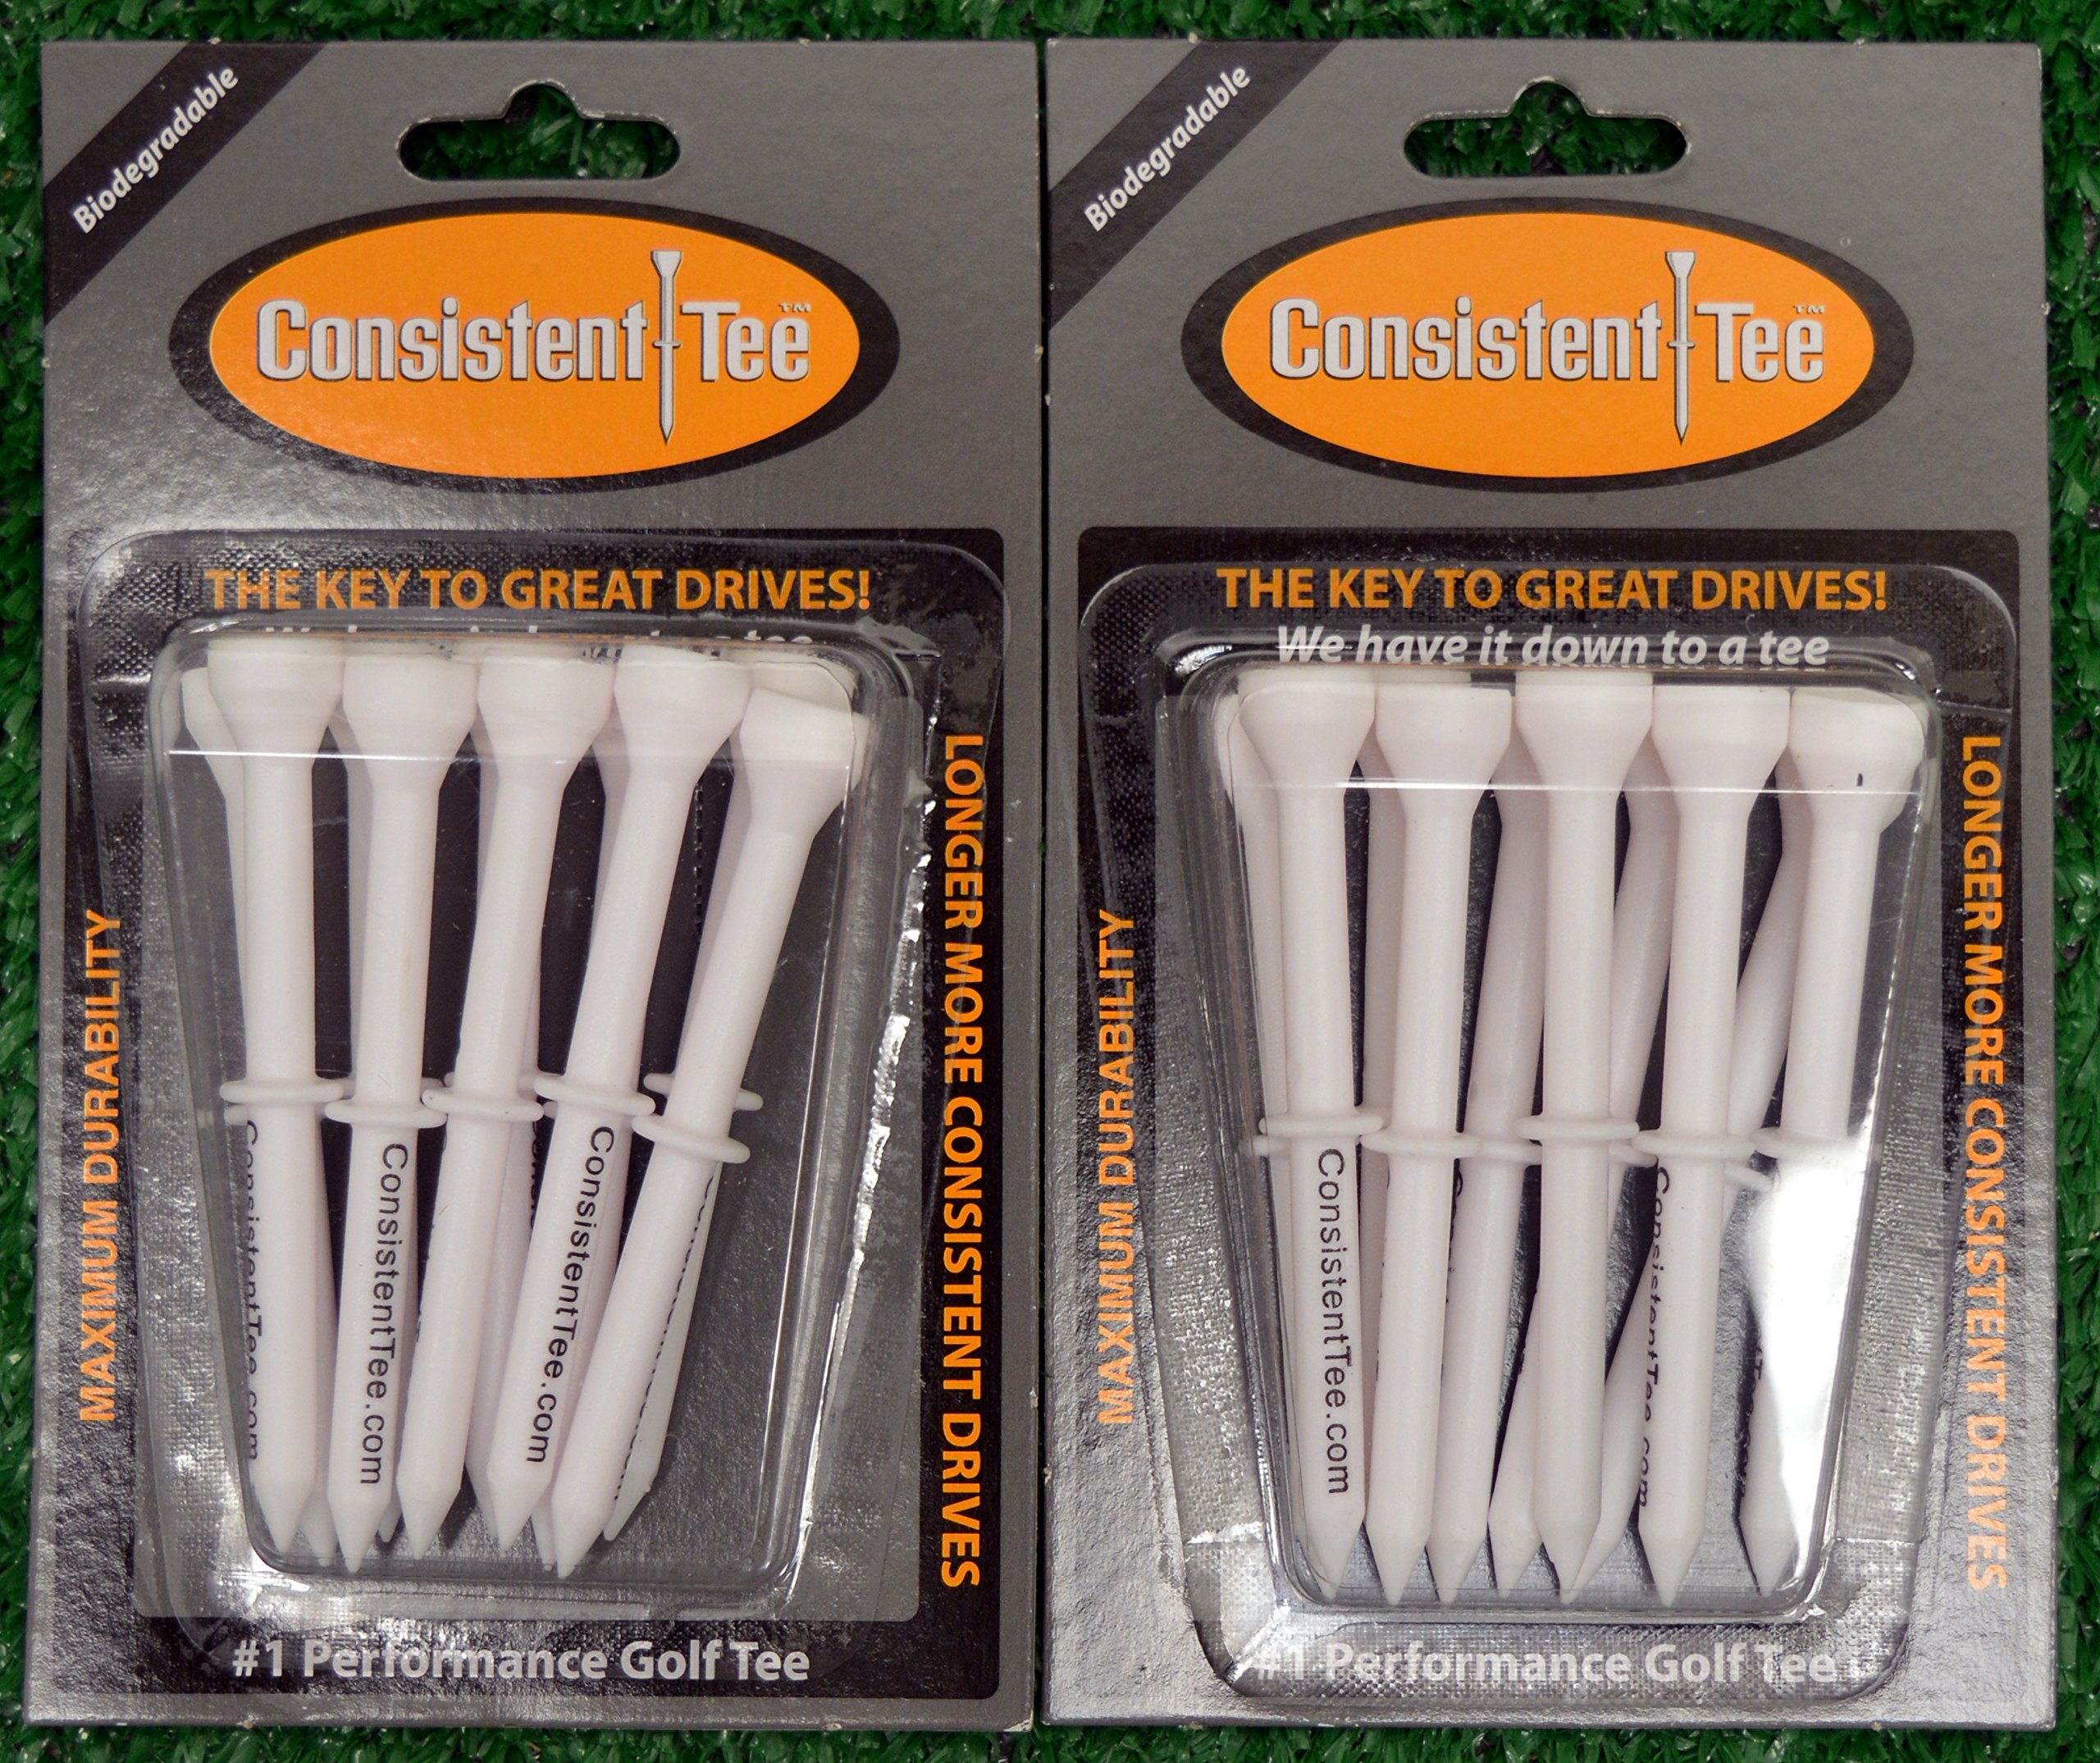 2 Consistent Tee 3 1/4'' Golf Tee Packs - White